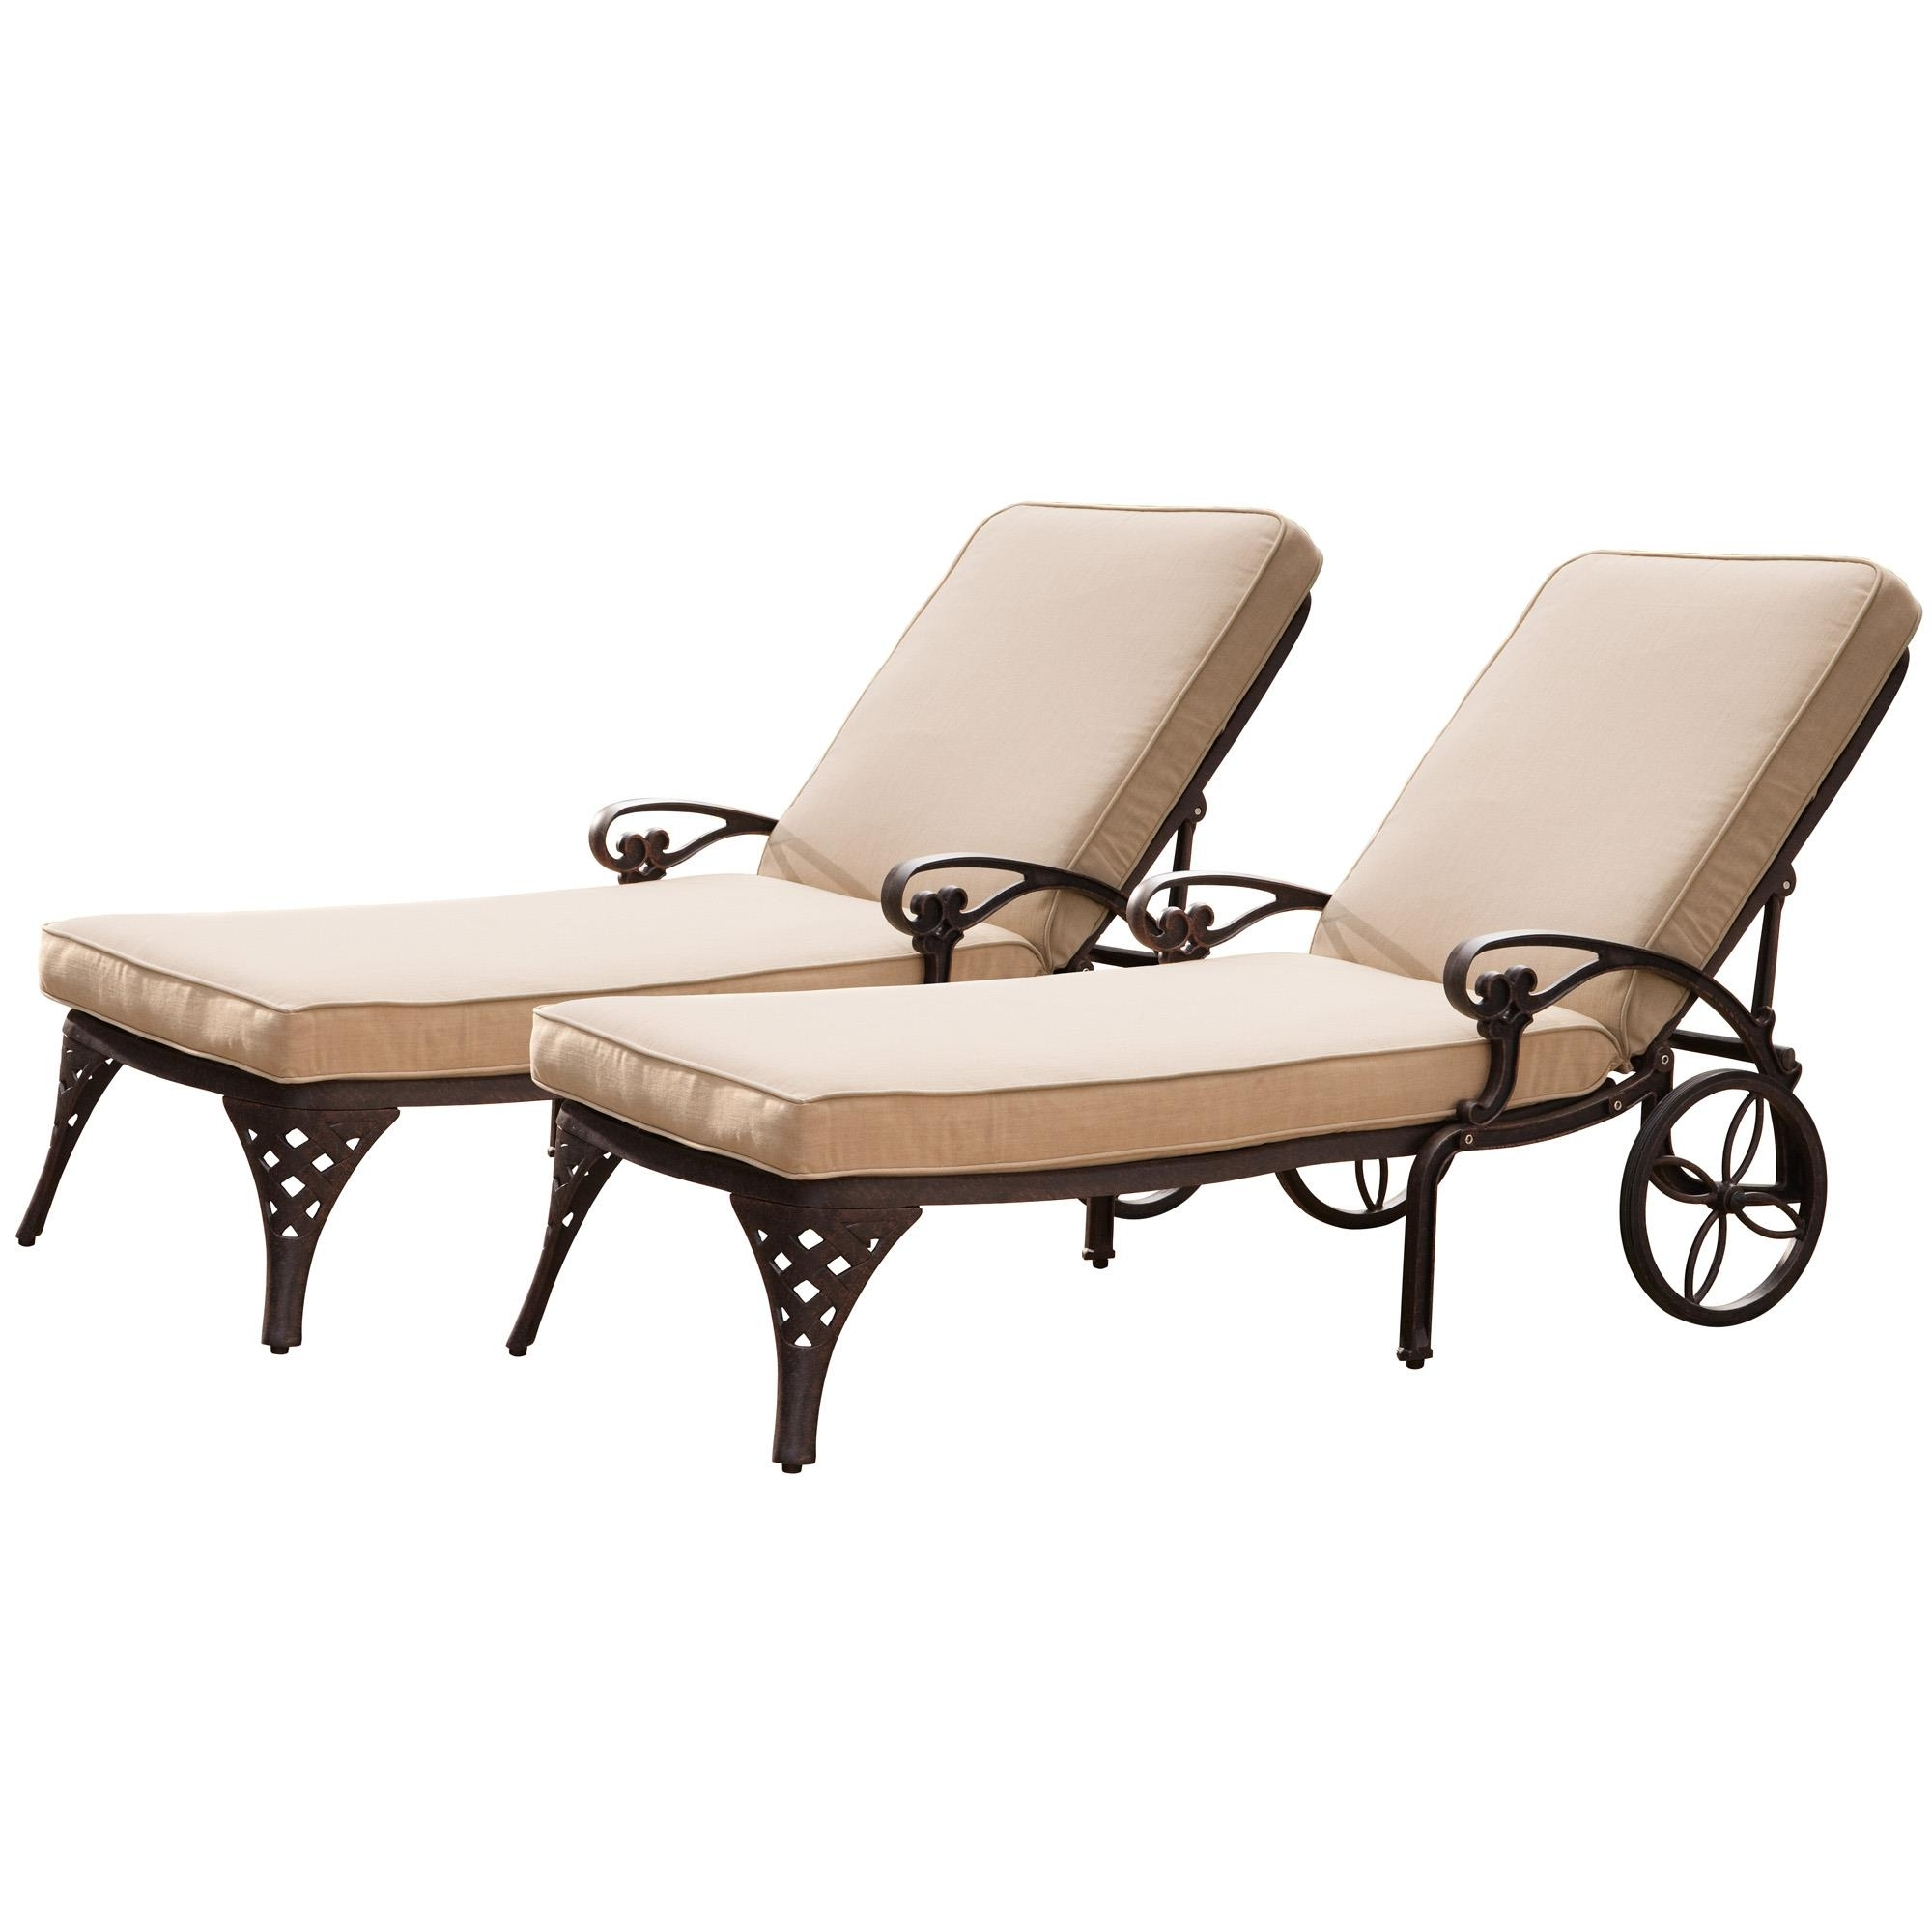 Favorite Cheap Outdoor Chaise Lounge Chairs Intended For Convertible Chair : Rocker Cushions Cheap Lawn Chair Cushions (View 14 of 15)